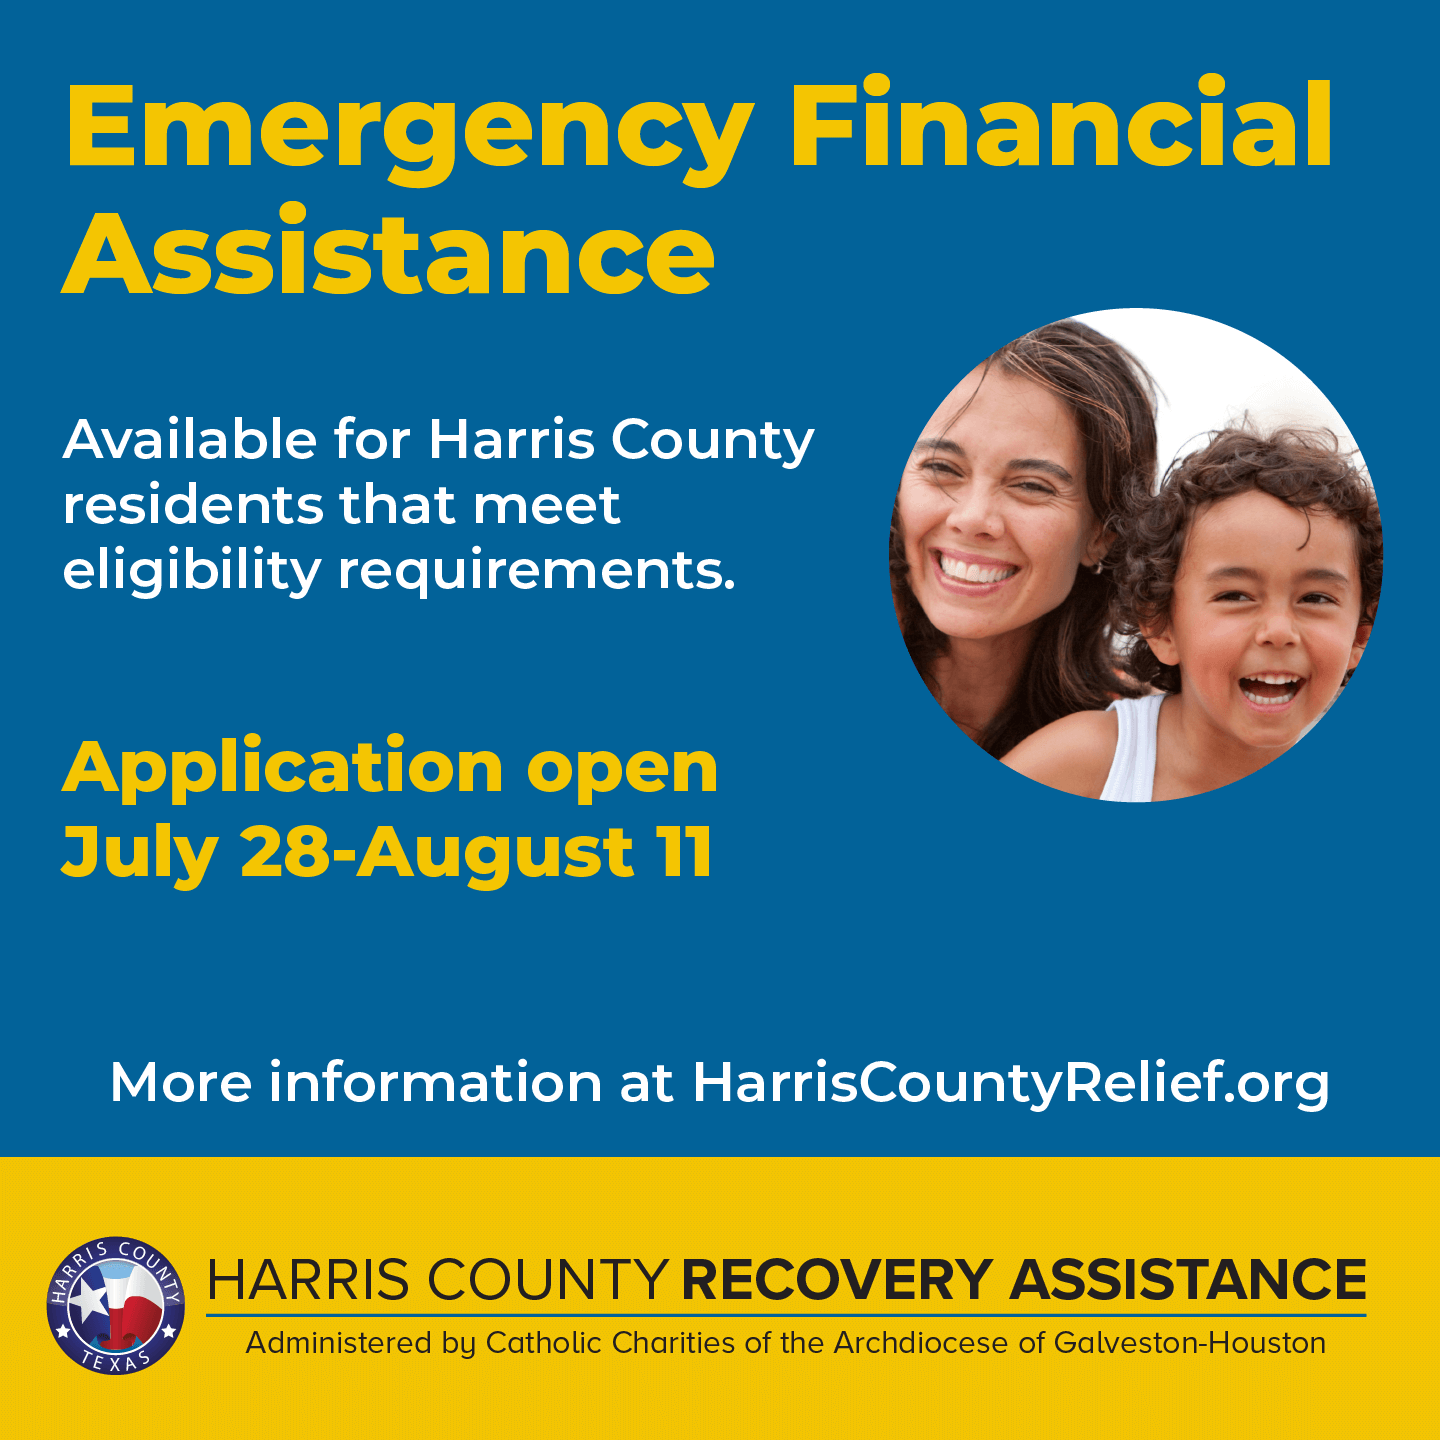 Harris County Launches New $30 Million COVID Relief Fund for Struggling Families